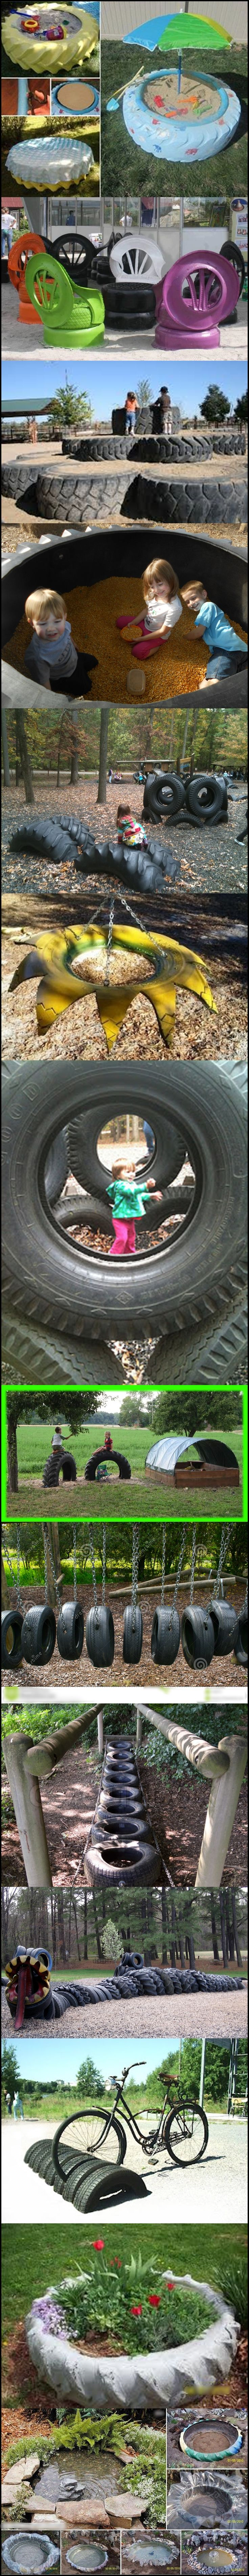 Huge truck tires made for wonderful childhood memories! Good times! 10-ways-to-reuse-old-tires#diy #recycling